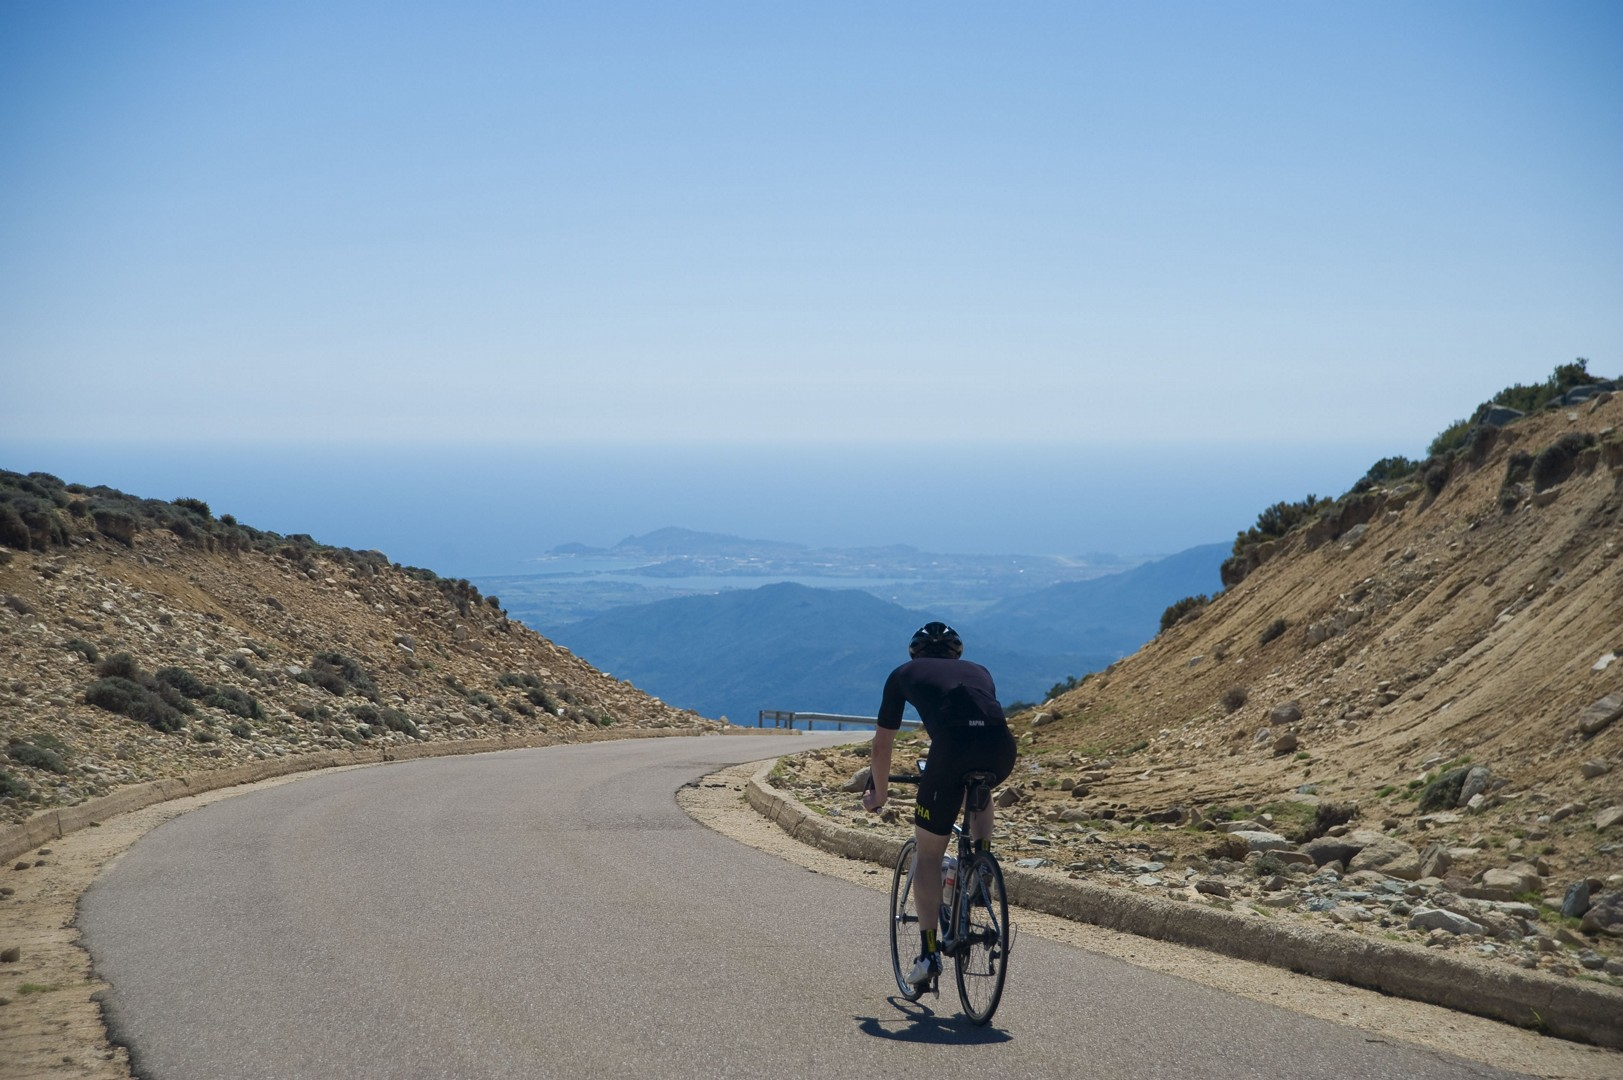 ESP2460.jpg - Italy - Sardinia - Mountain Explorer - Guided Road Cycling Holiday - Road Cycling